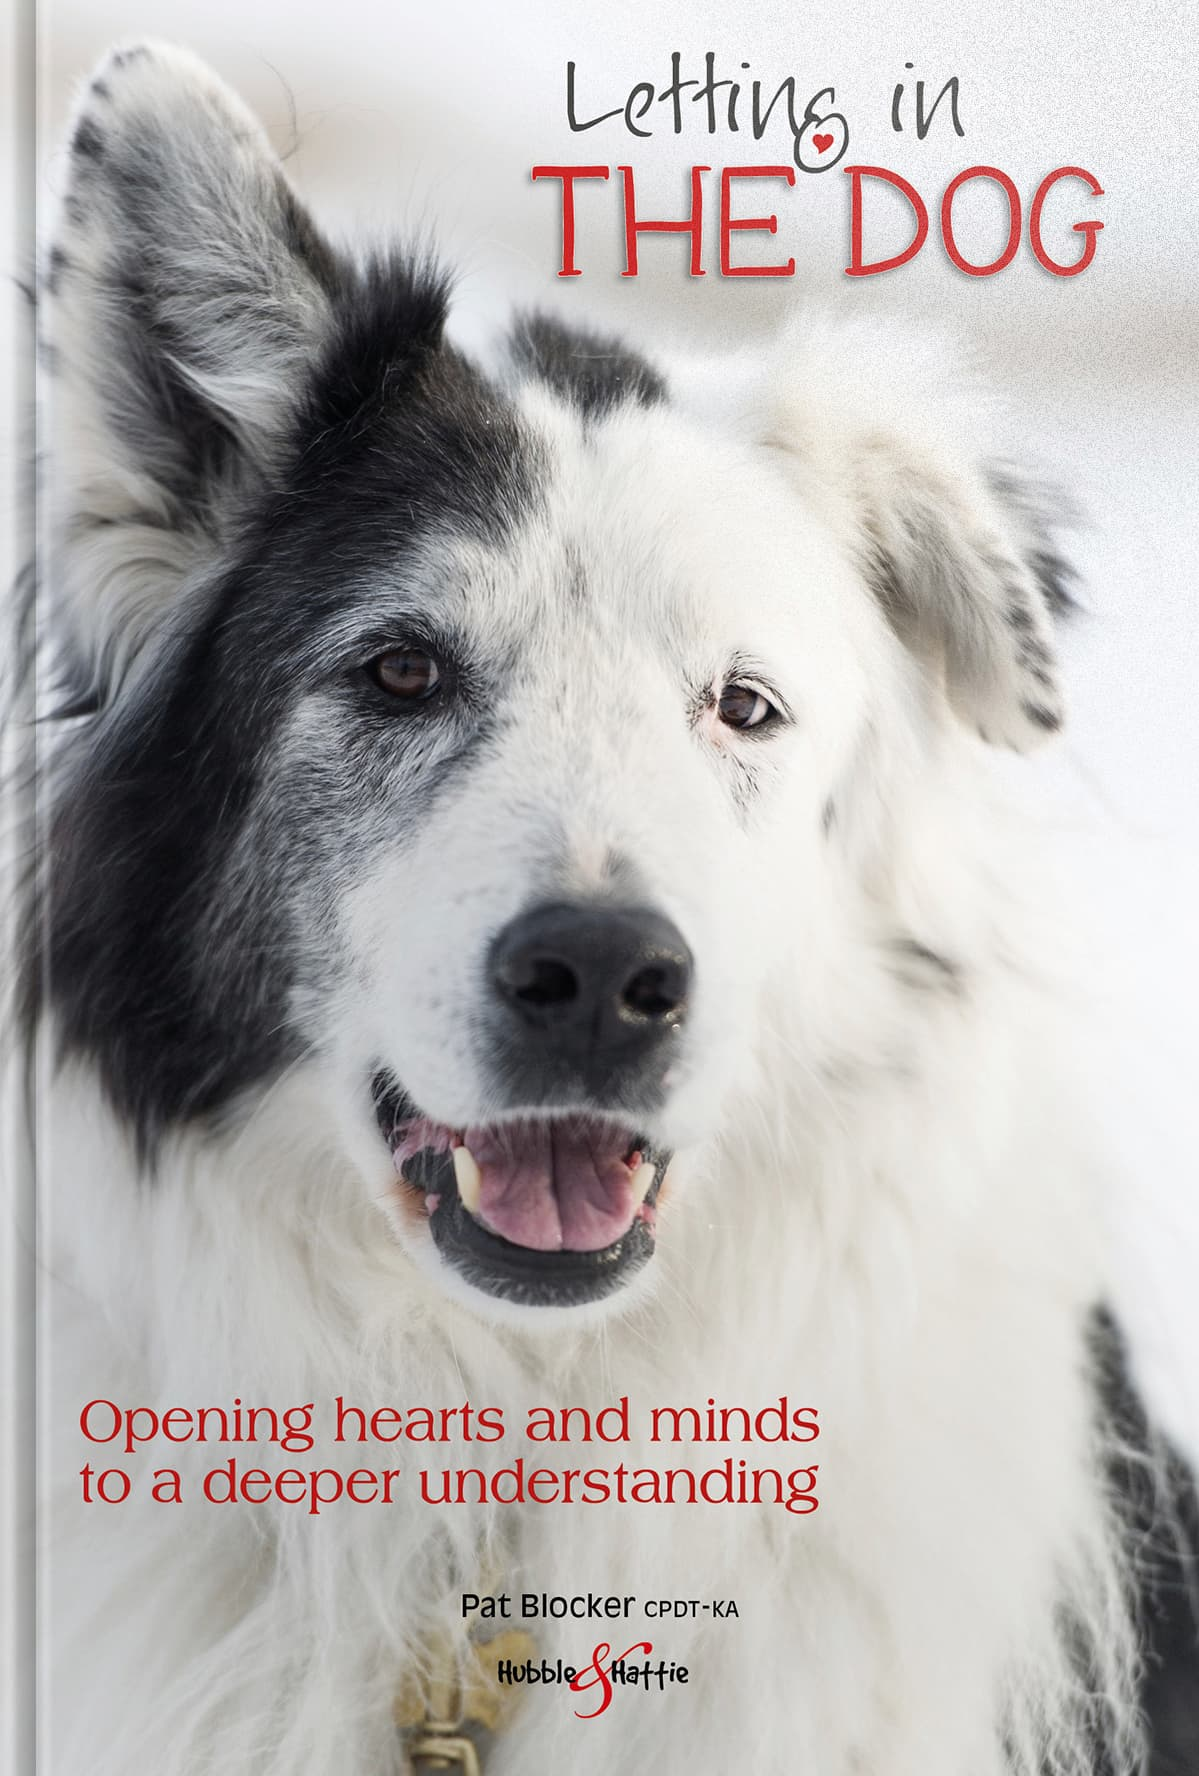 Letting in the dog – Opening hearts and minds to a deeper understanding